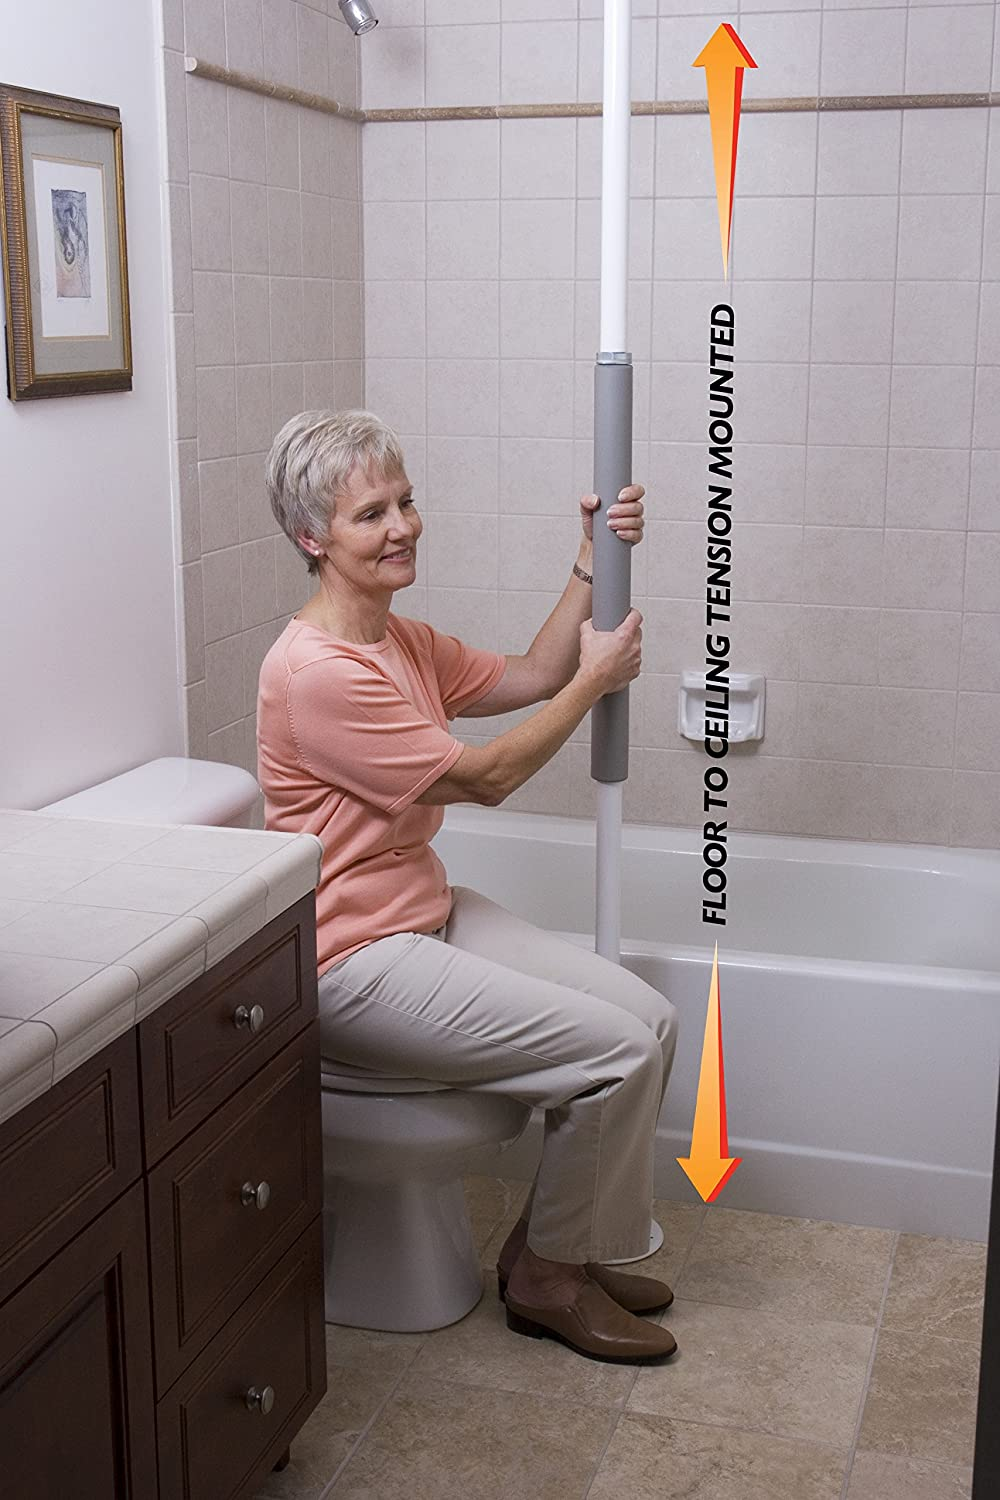 Amazon.com: Stander Security Pole - Tension Mounted Elderly ...